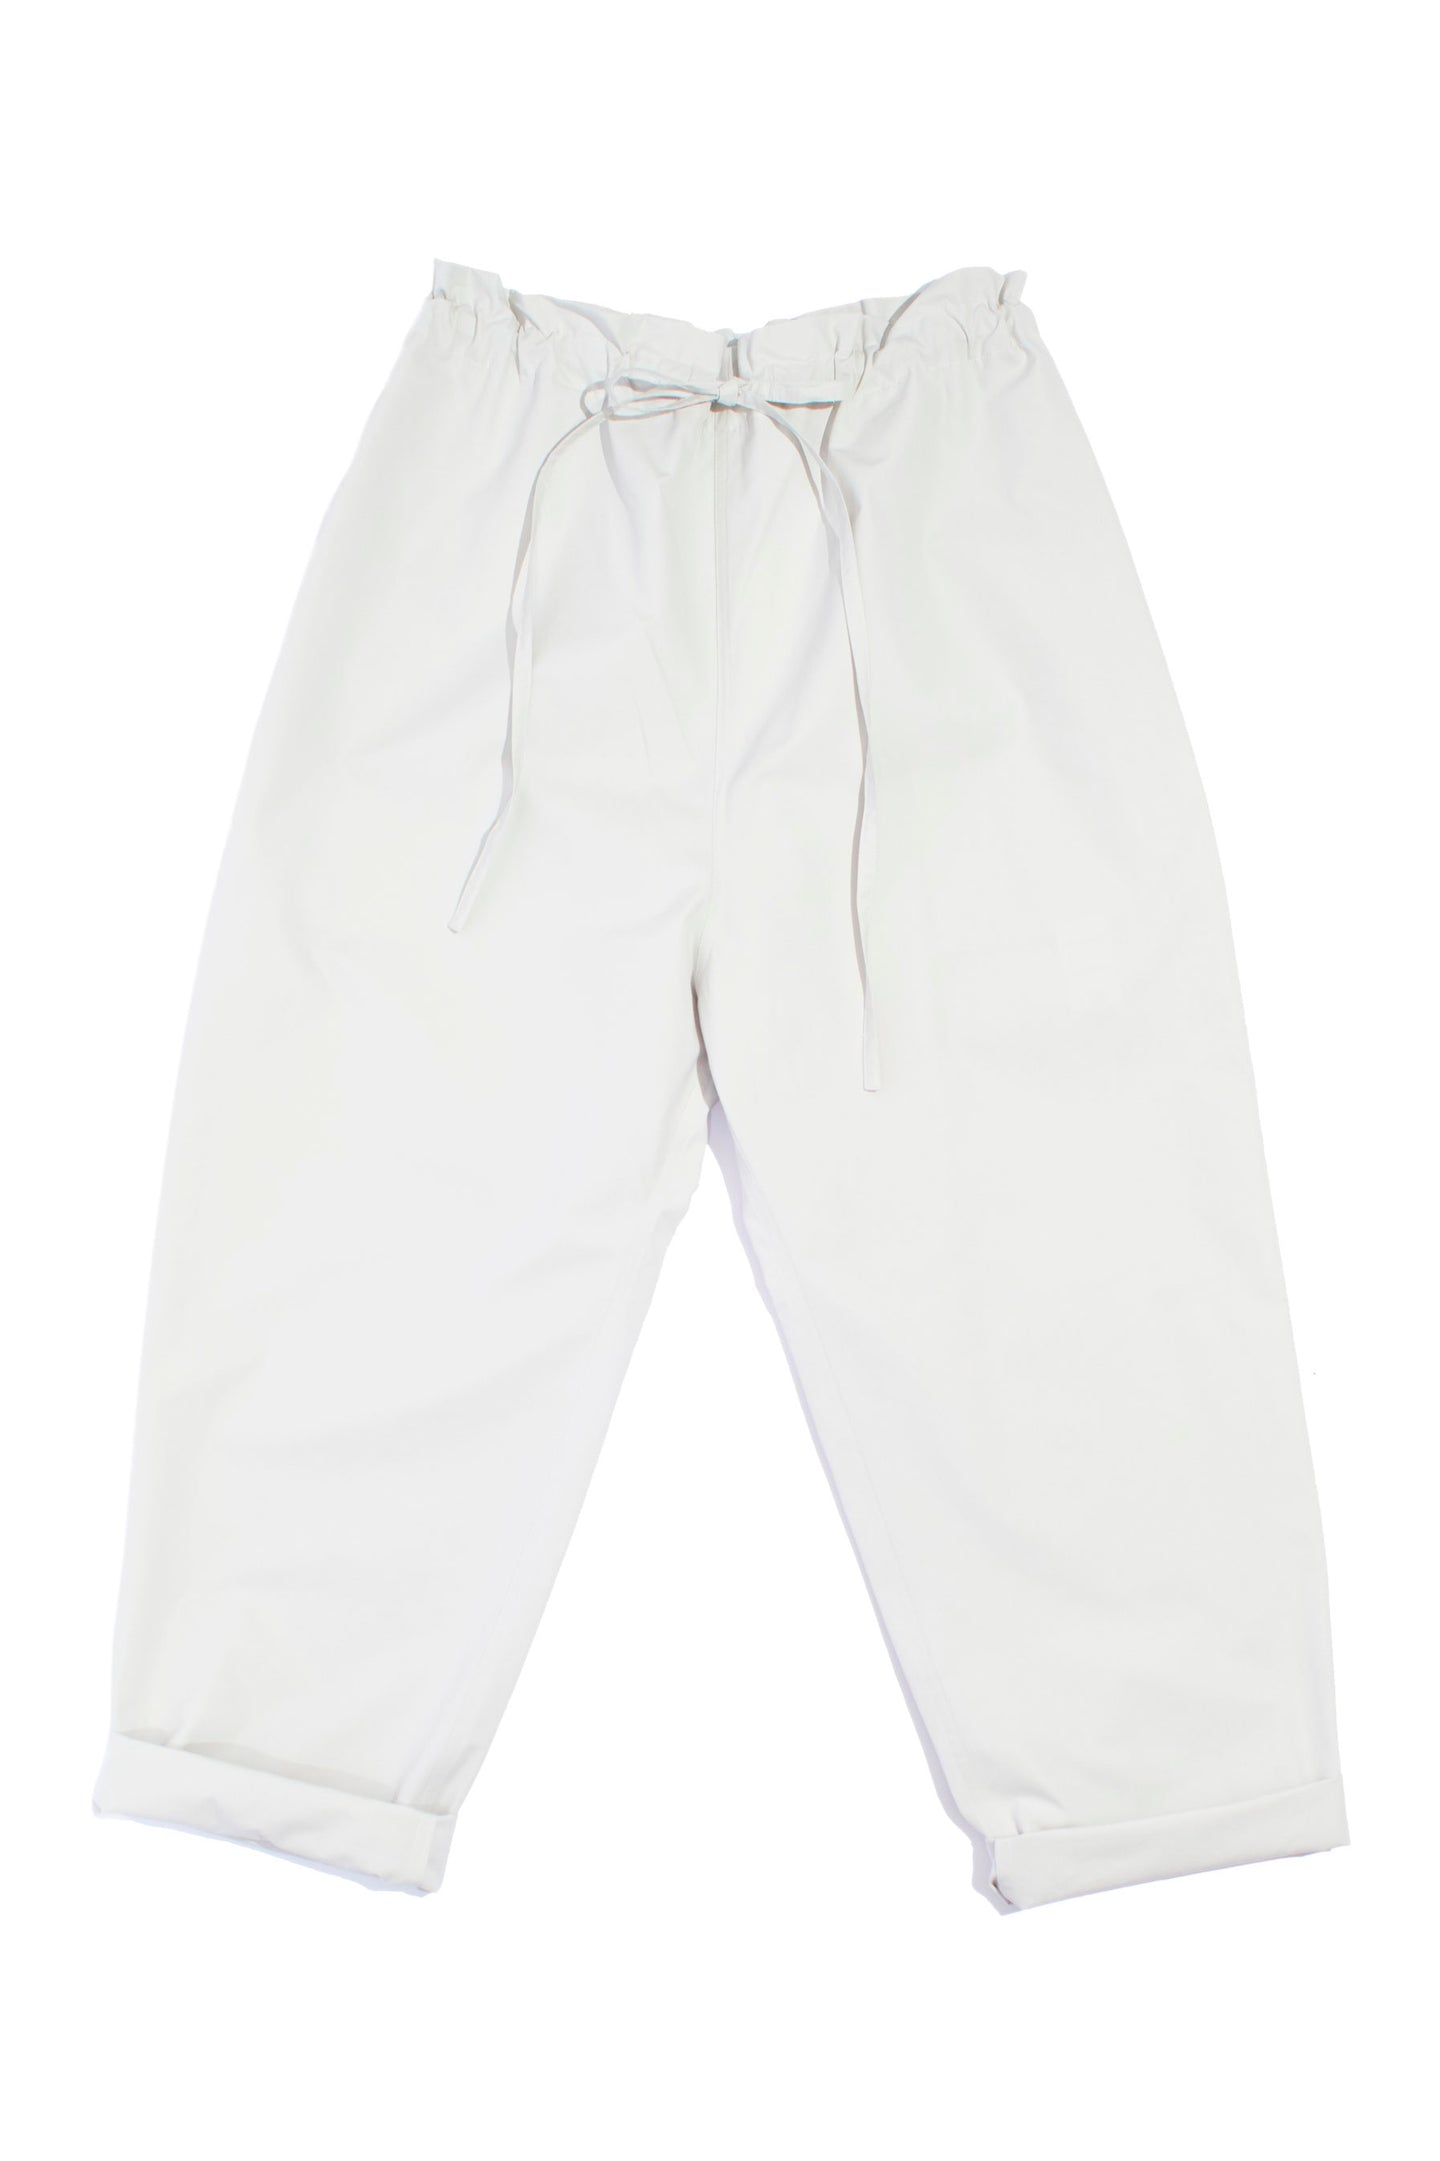 Peak Casual Drawstring Pants